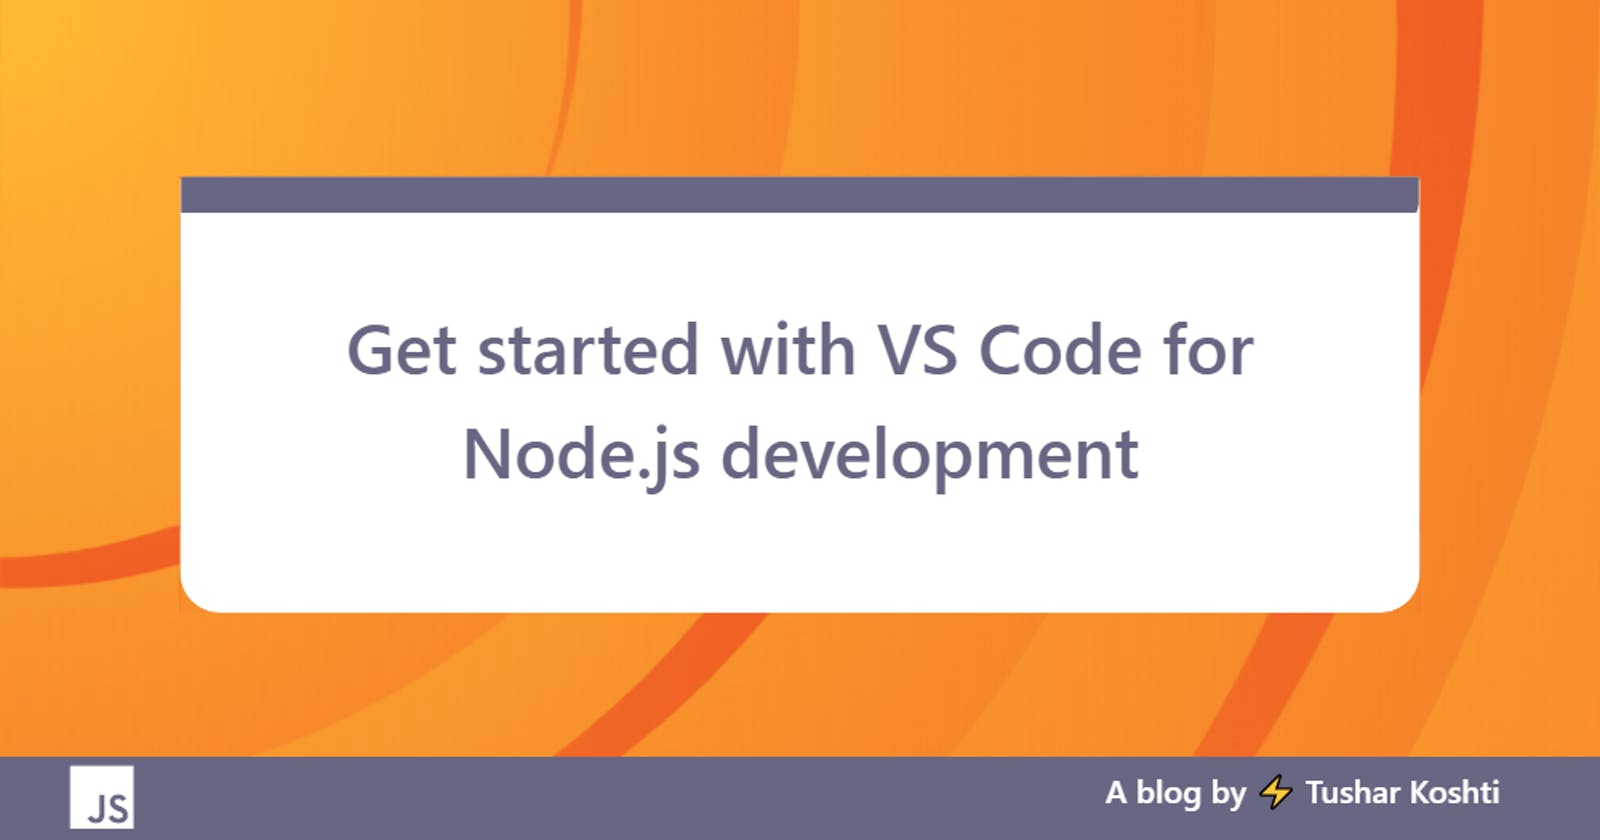 Get started with VS Code for Node.js development